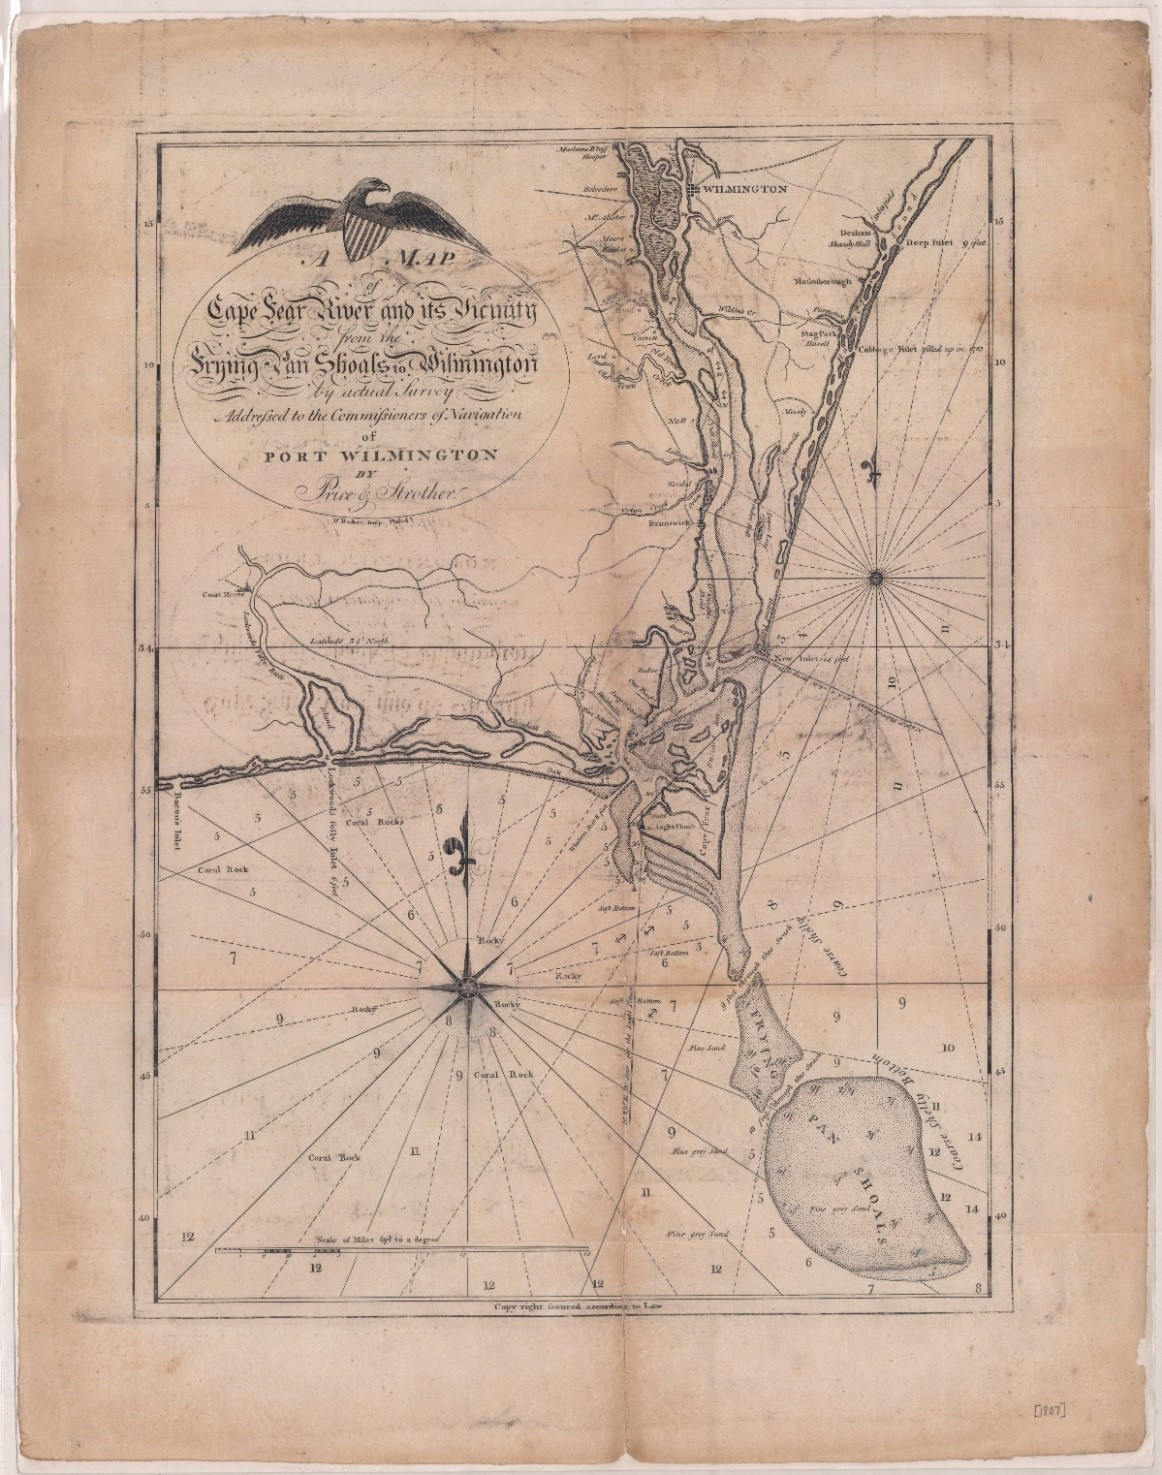 Fraser Ridge Nc Map.Documenting The World Of Outlander 6 The Frasers And The